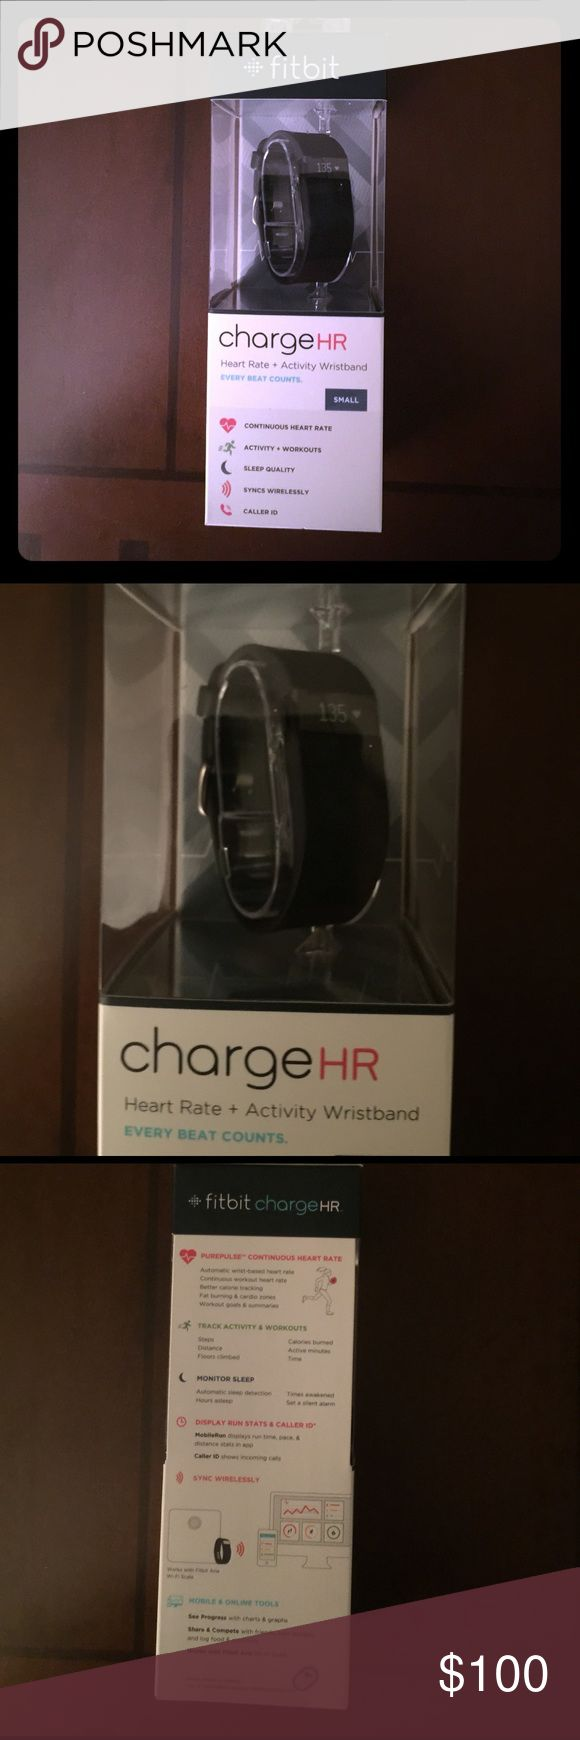 New Black Fitbit Charge HR size Small Brand New Black Fitbit Charge HR size Small. Never opened! Fitbit Other